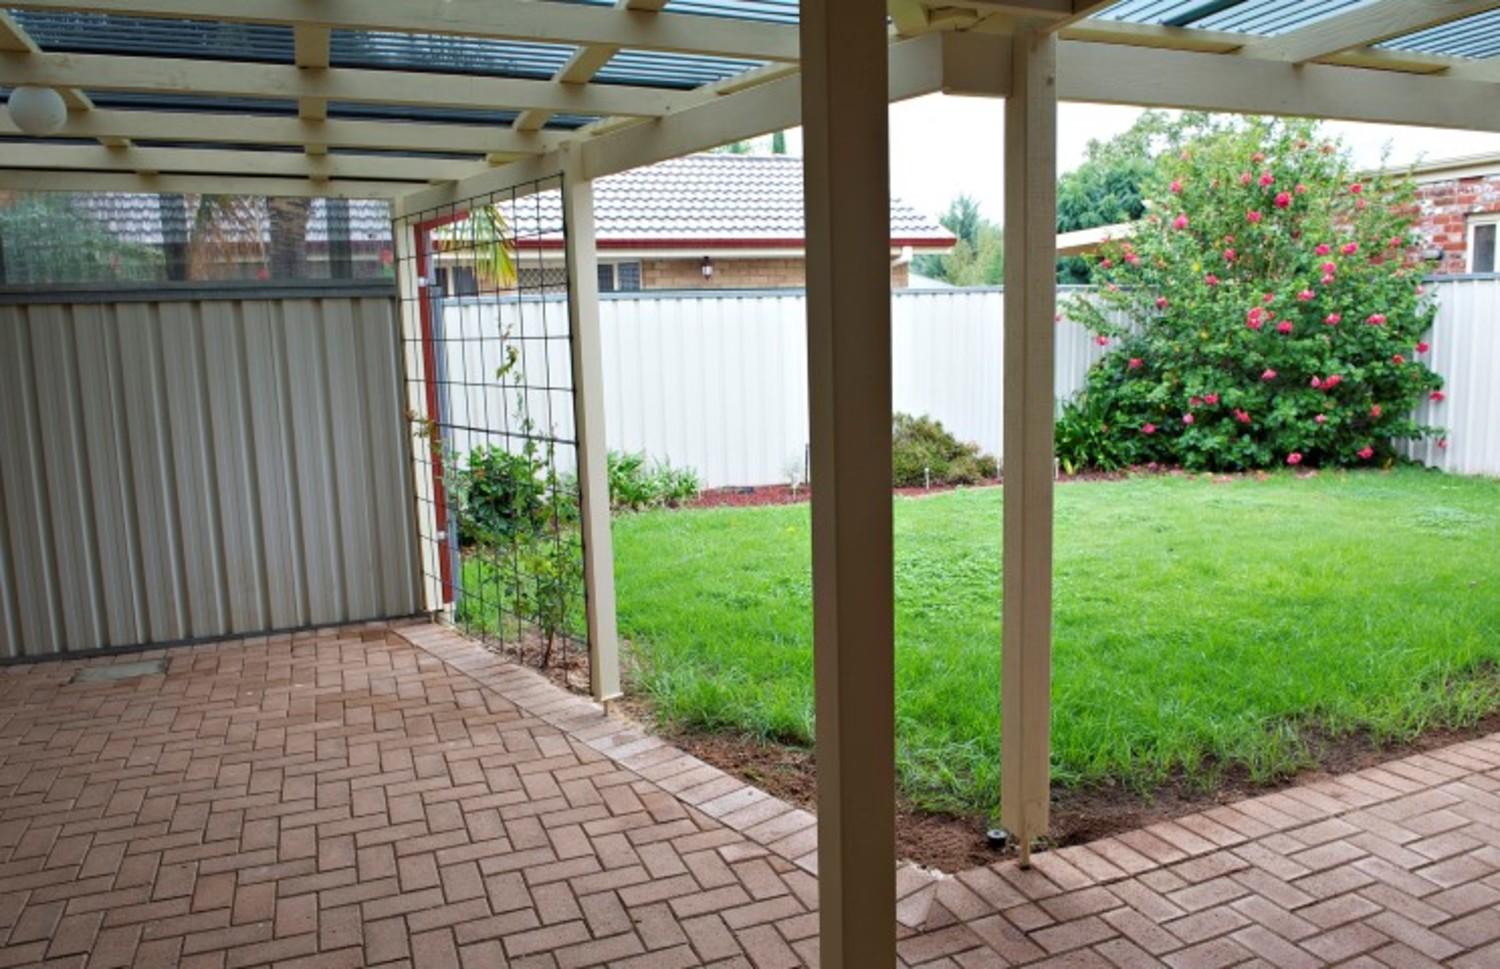 Property Report for 6a Muscat Court, Mildura VIC 3500